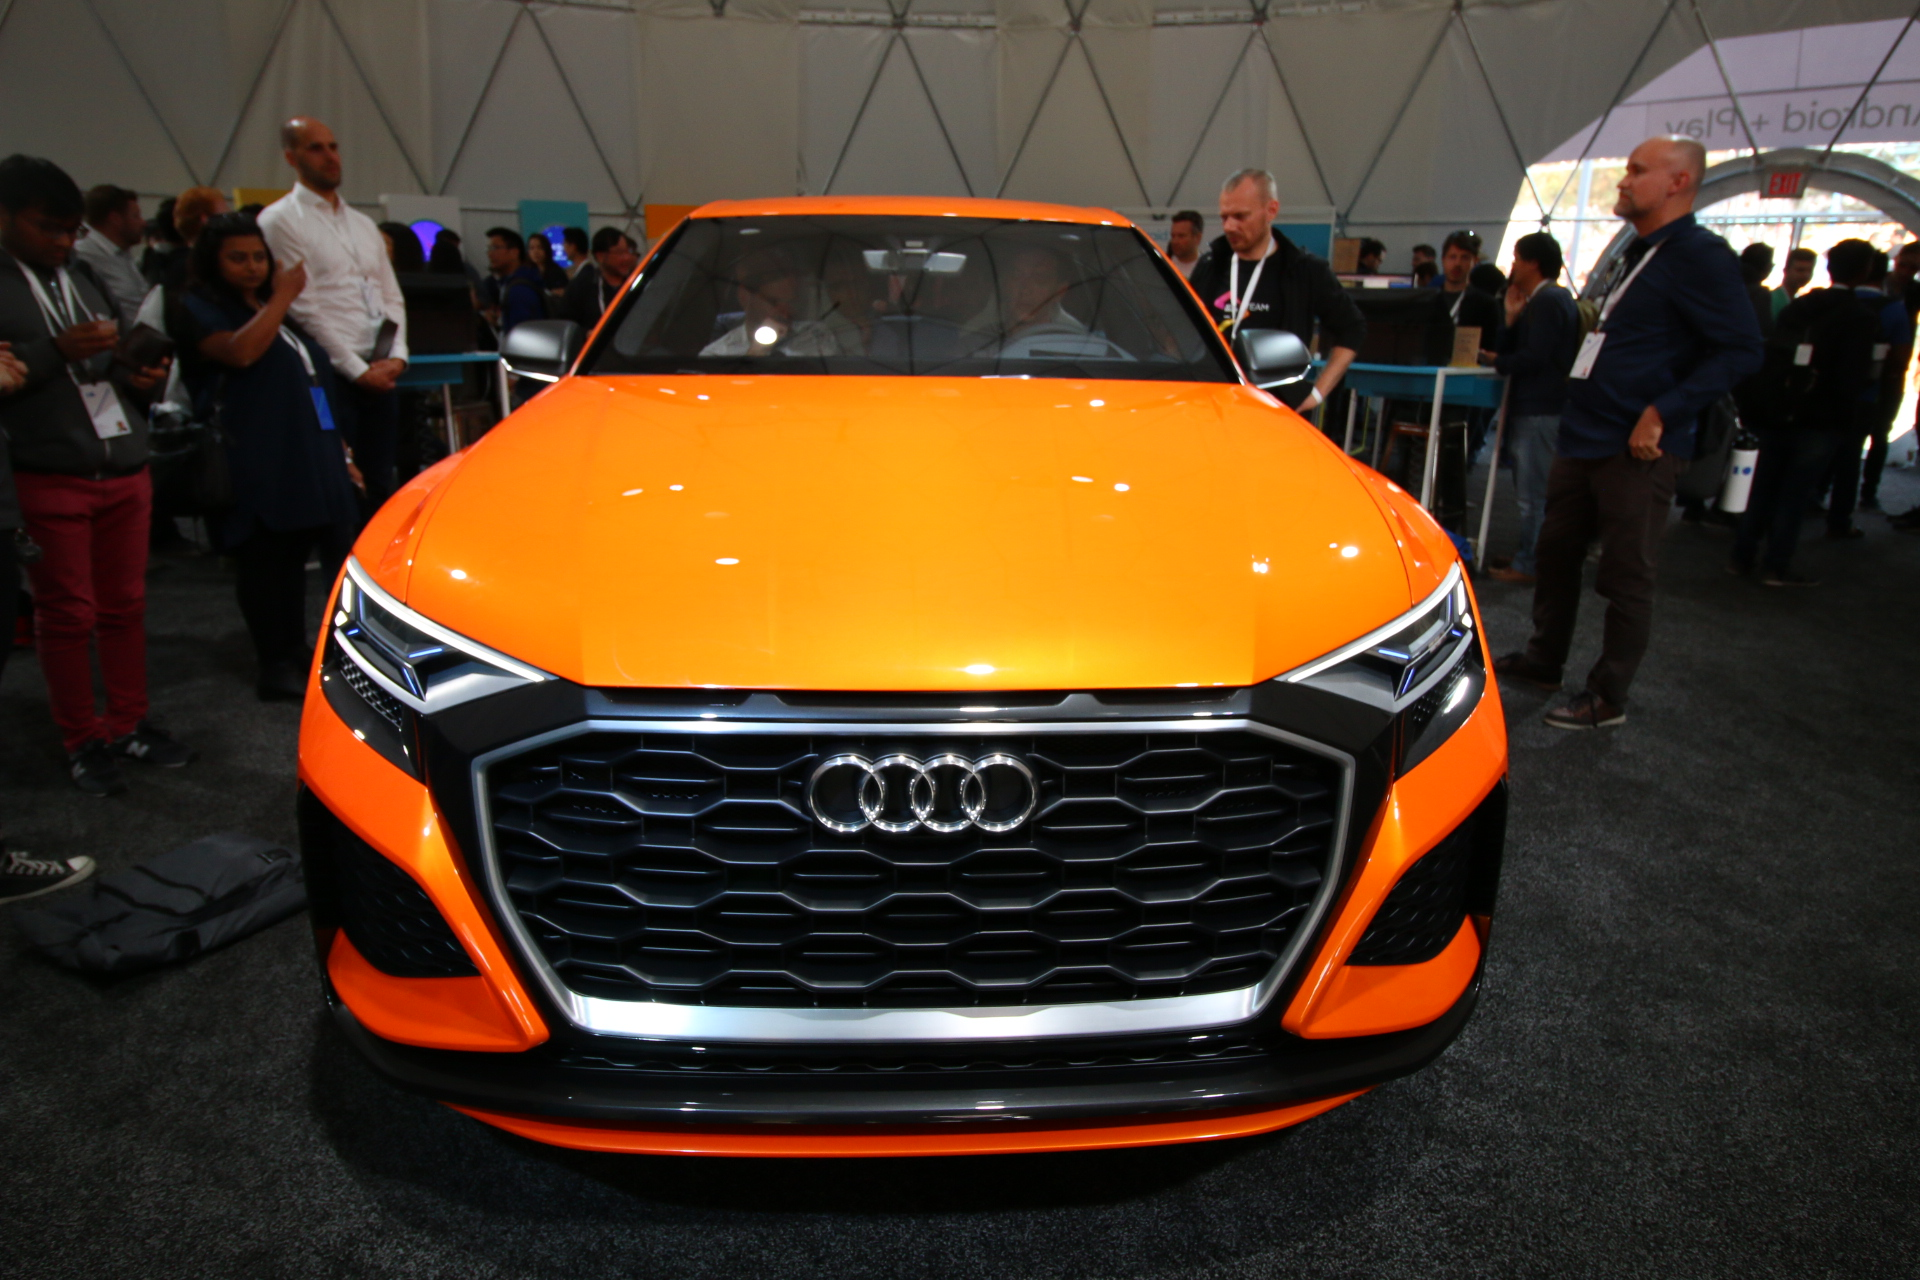 This Cool Audi Concept Car Has Android Fully Integrated